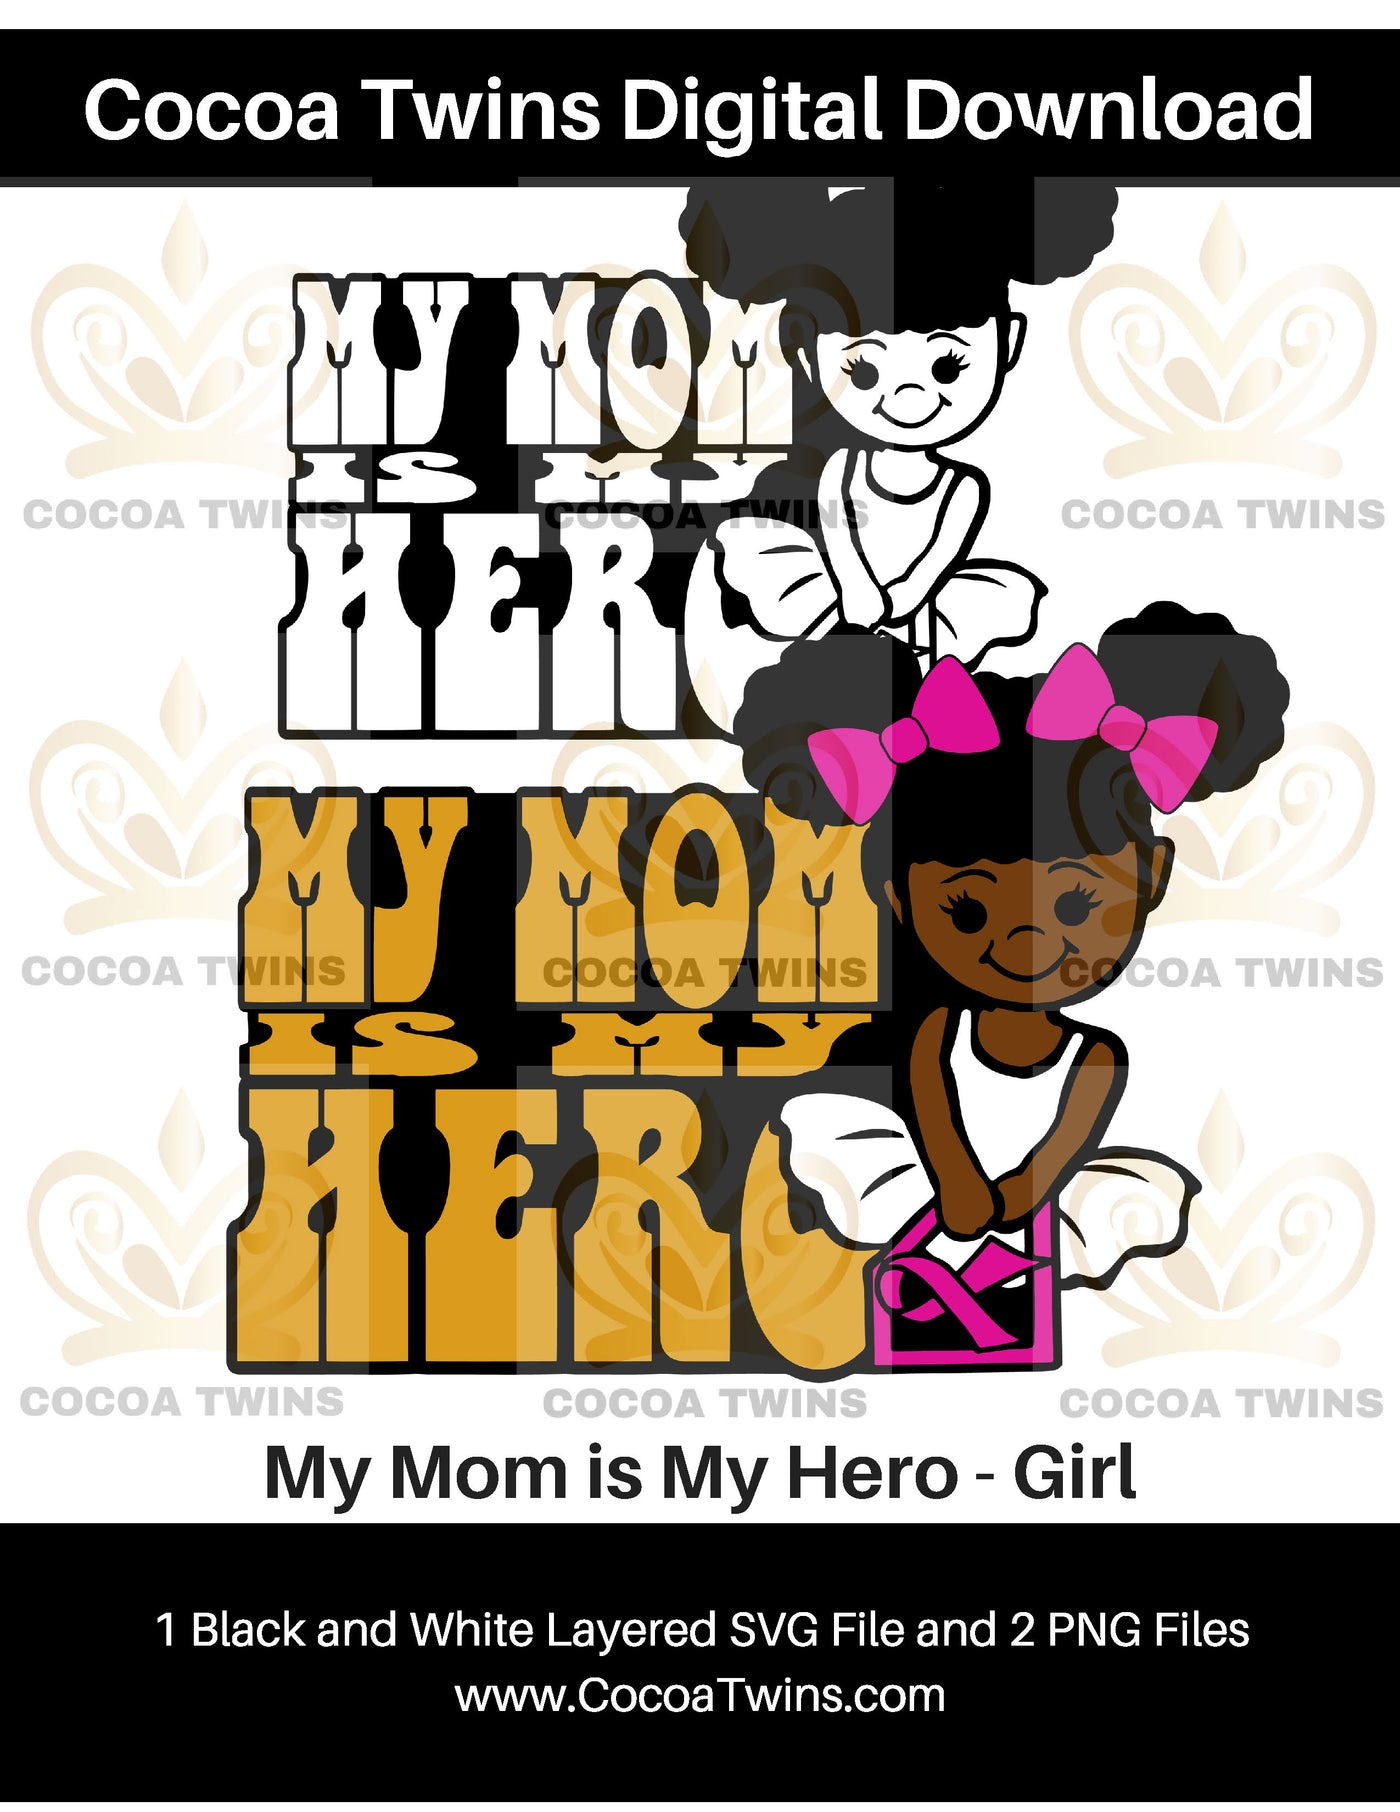 Digital Download  -  My Mom is My Hero - Girl - SVG Layered File and PNG File Format - Cocoa Twins